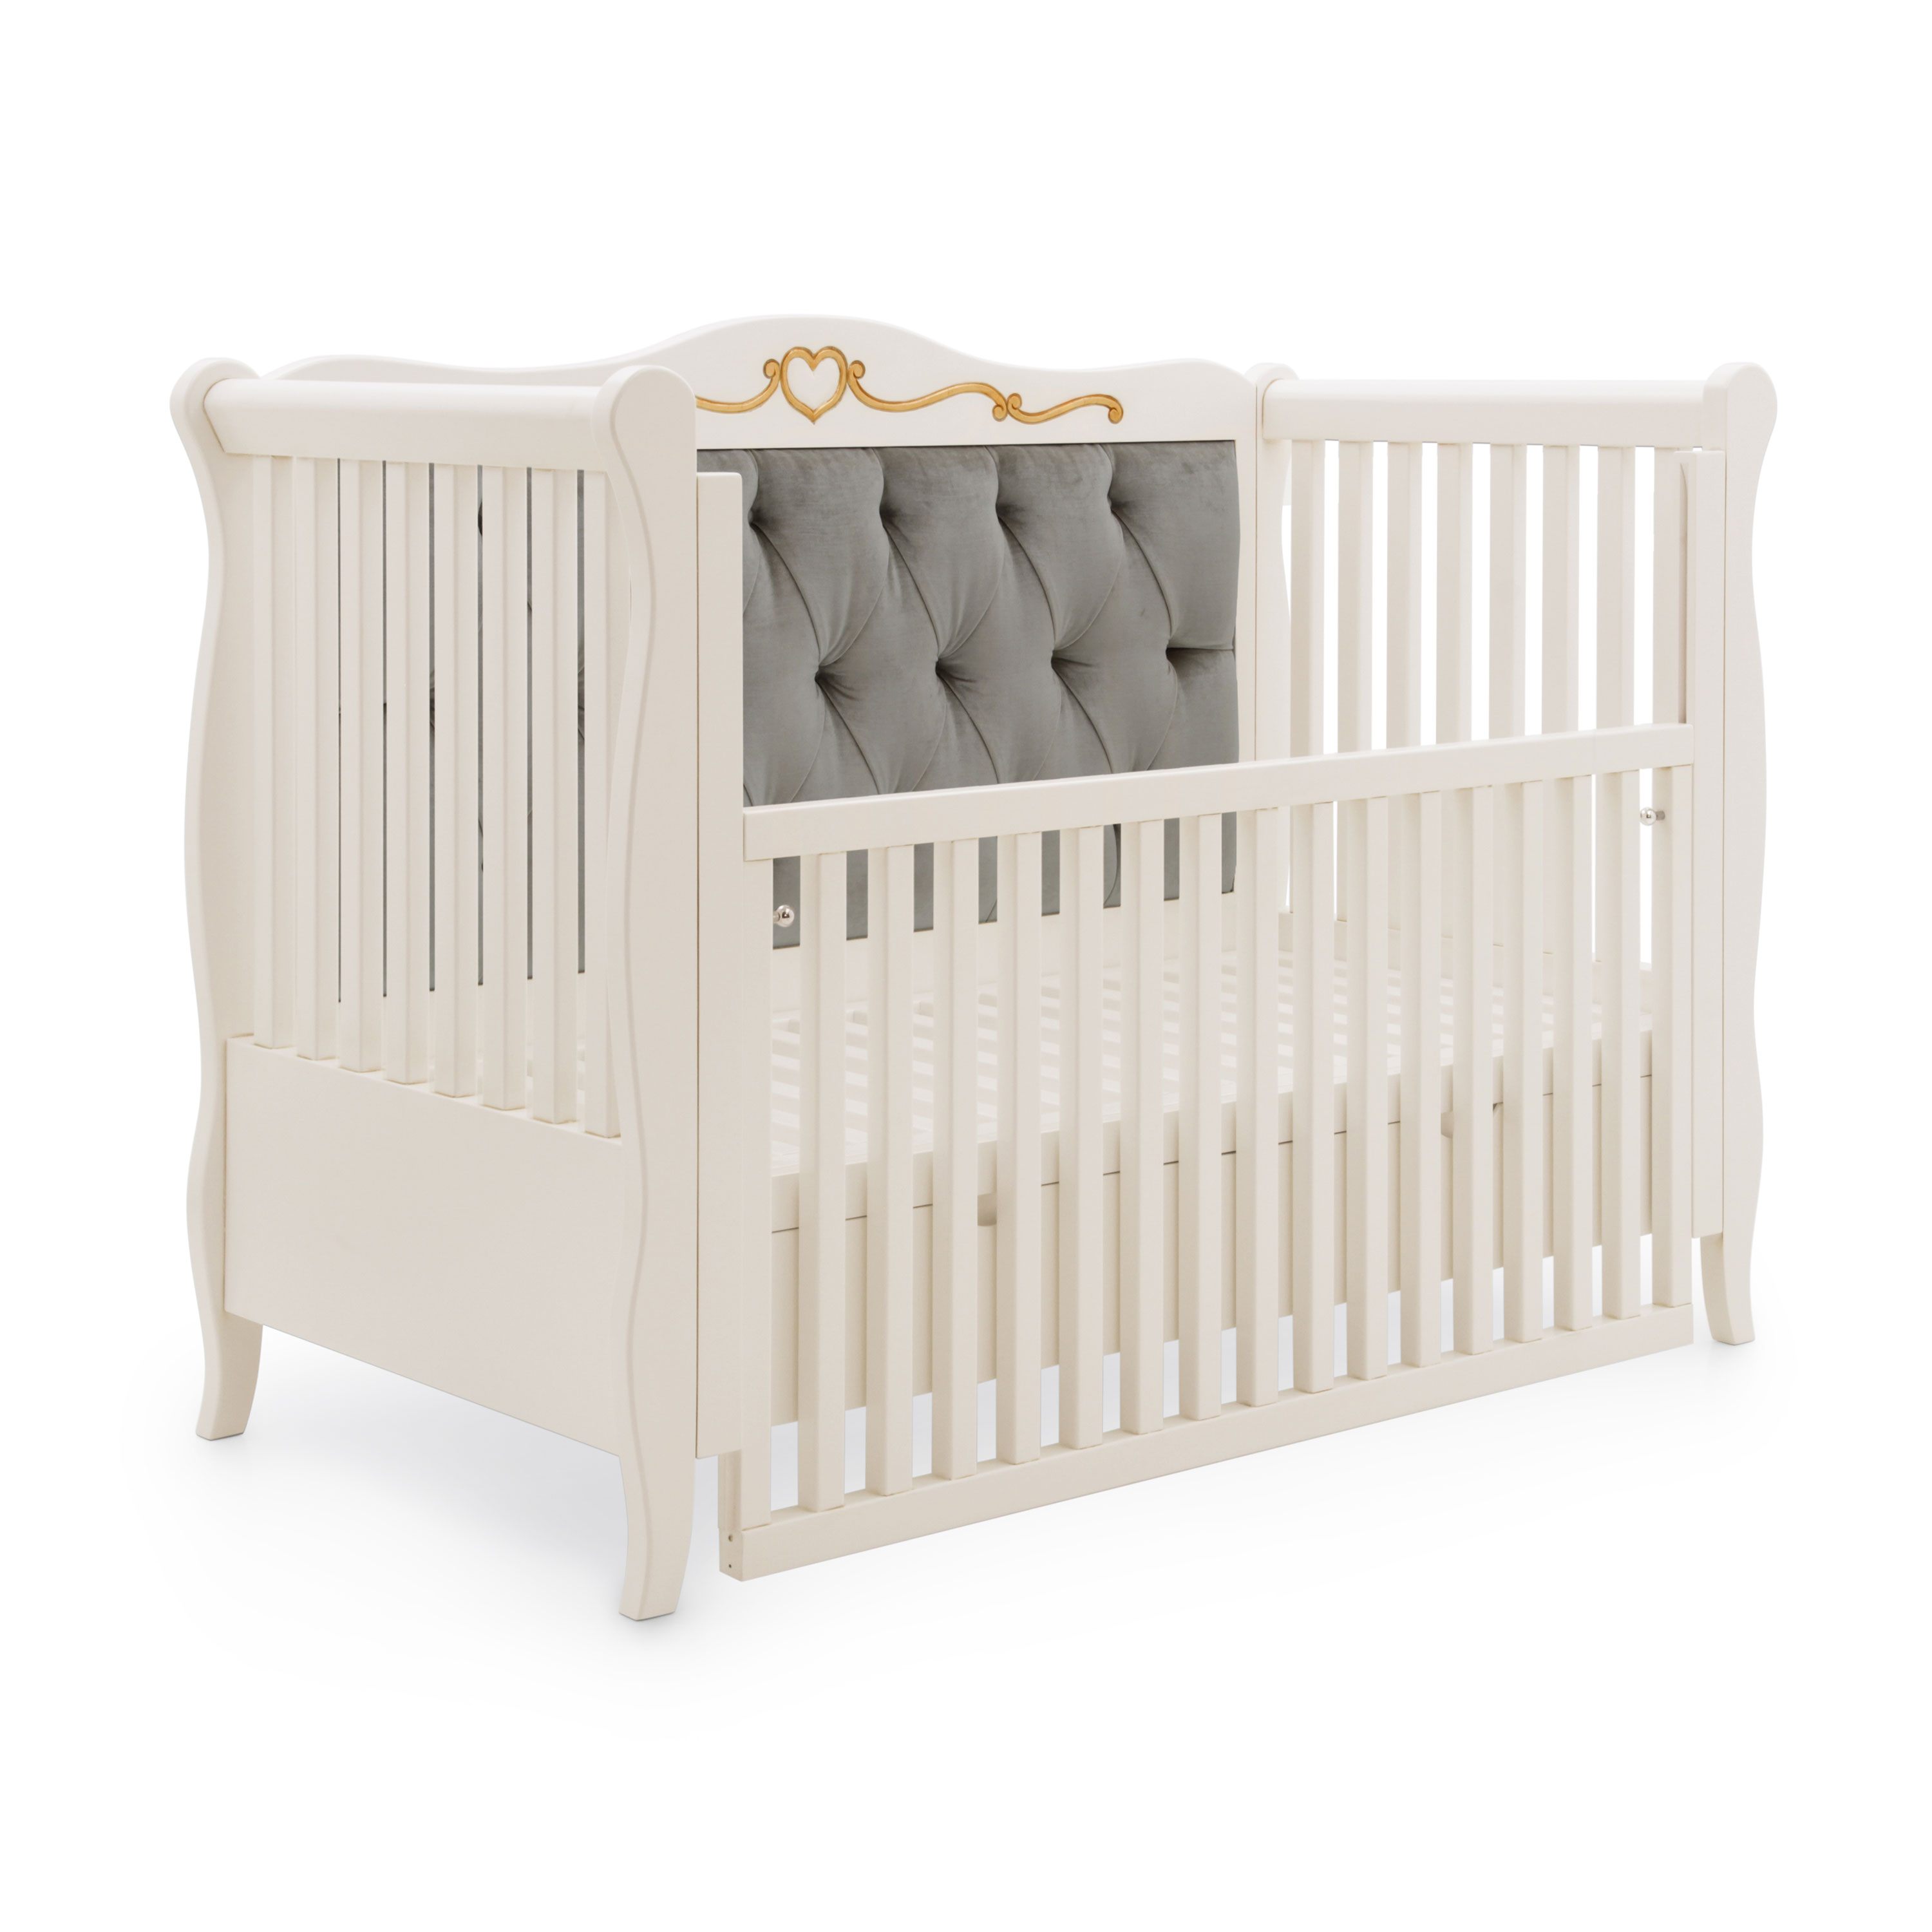 Classic Style Baby Bed Made Of Wood Custom034 Sevensedie